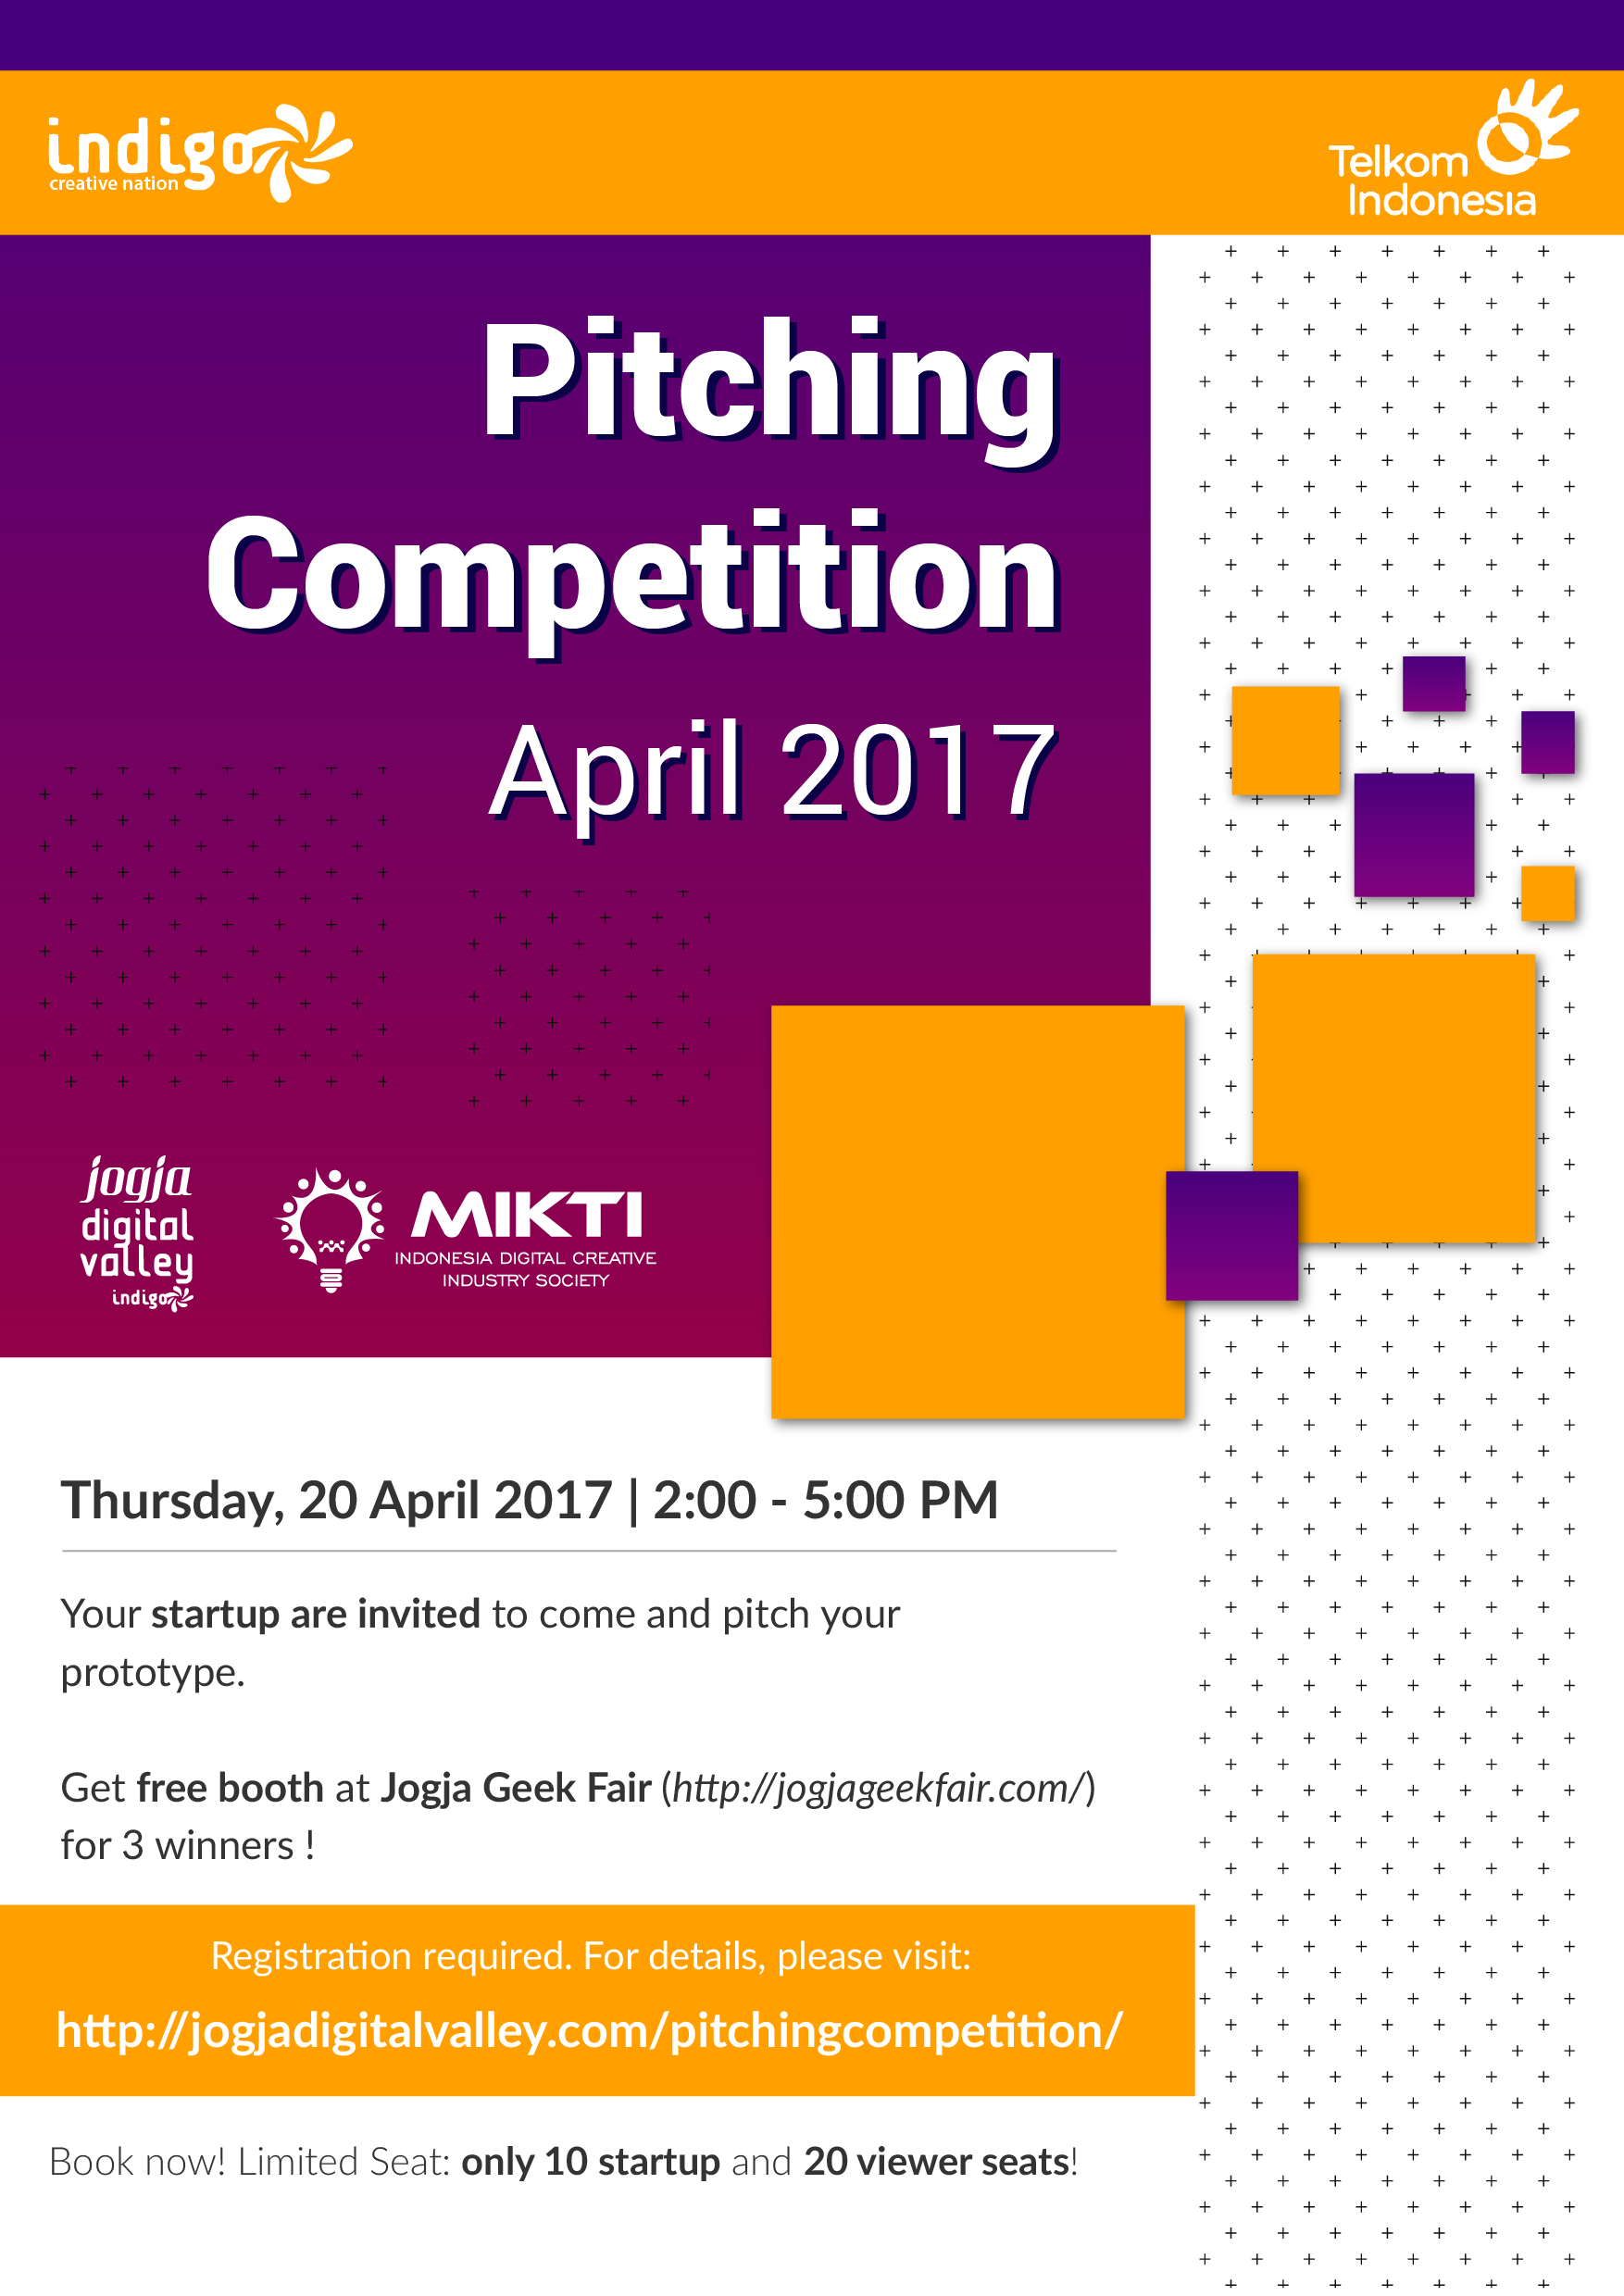 Jogja Digital Valley Pitching Competition 2017